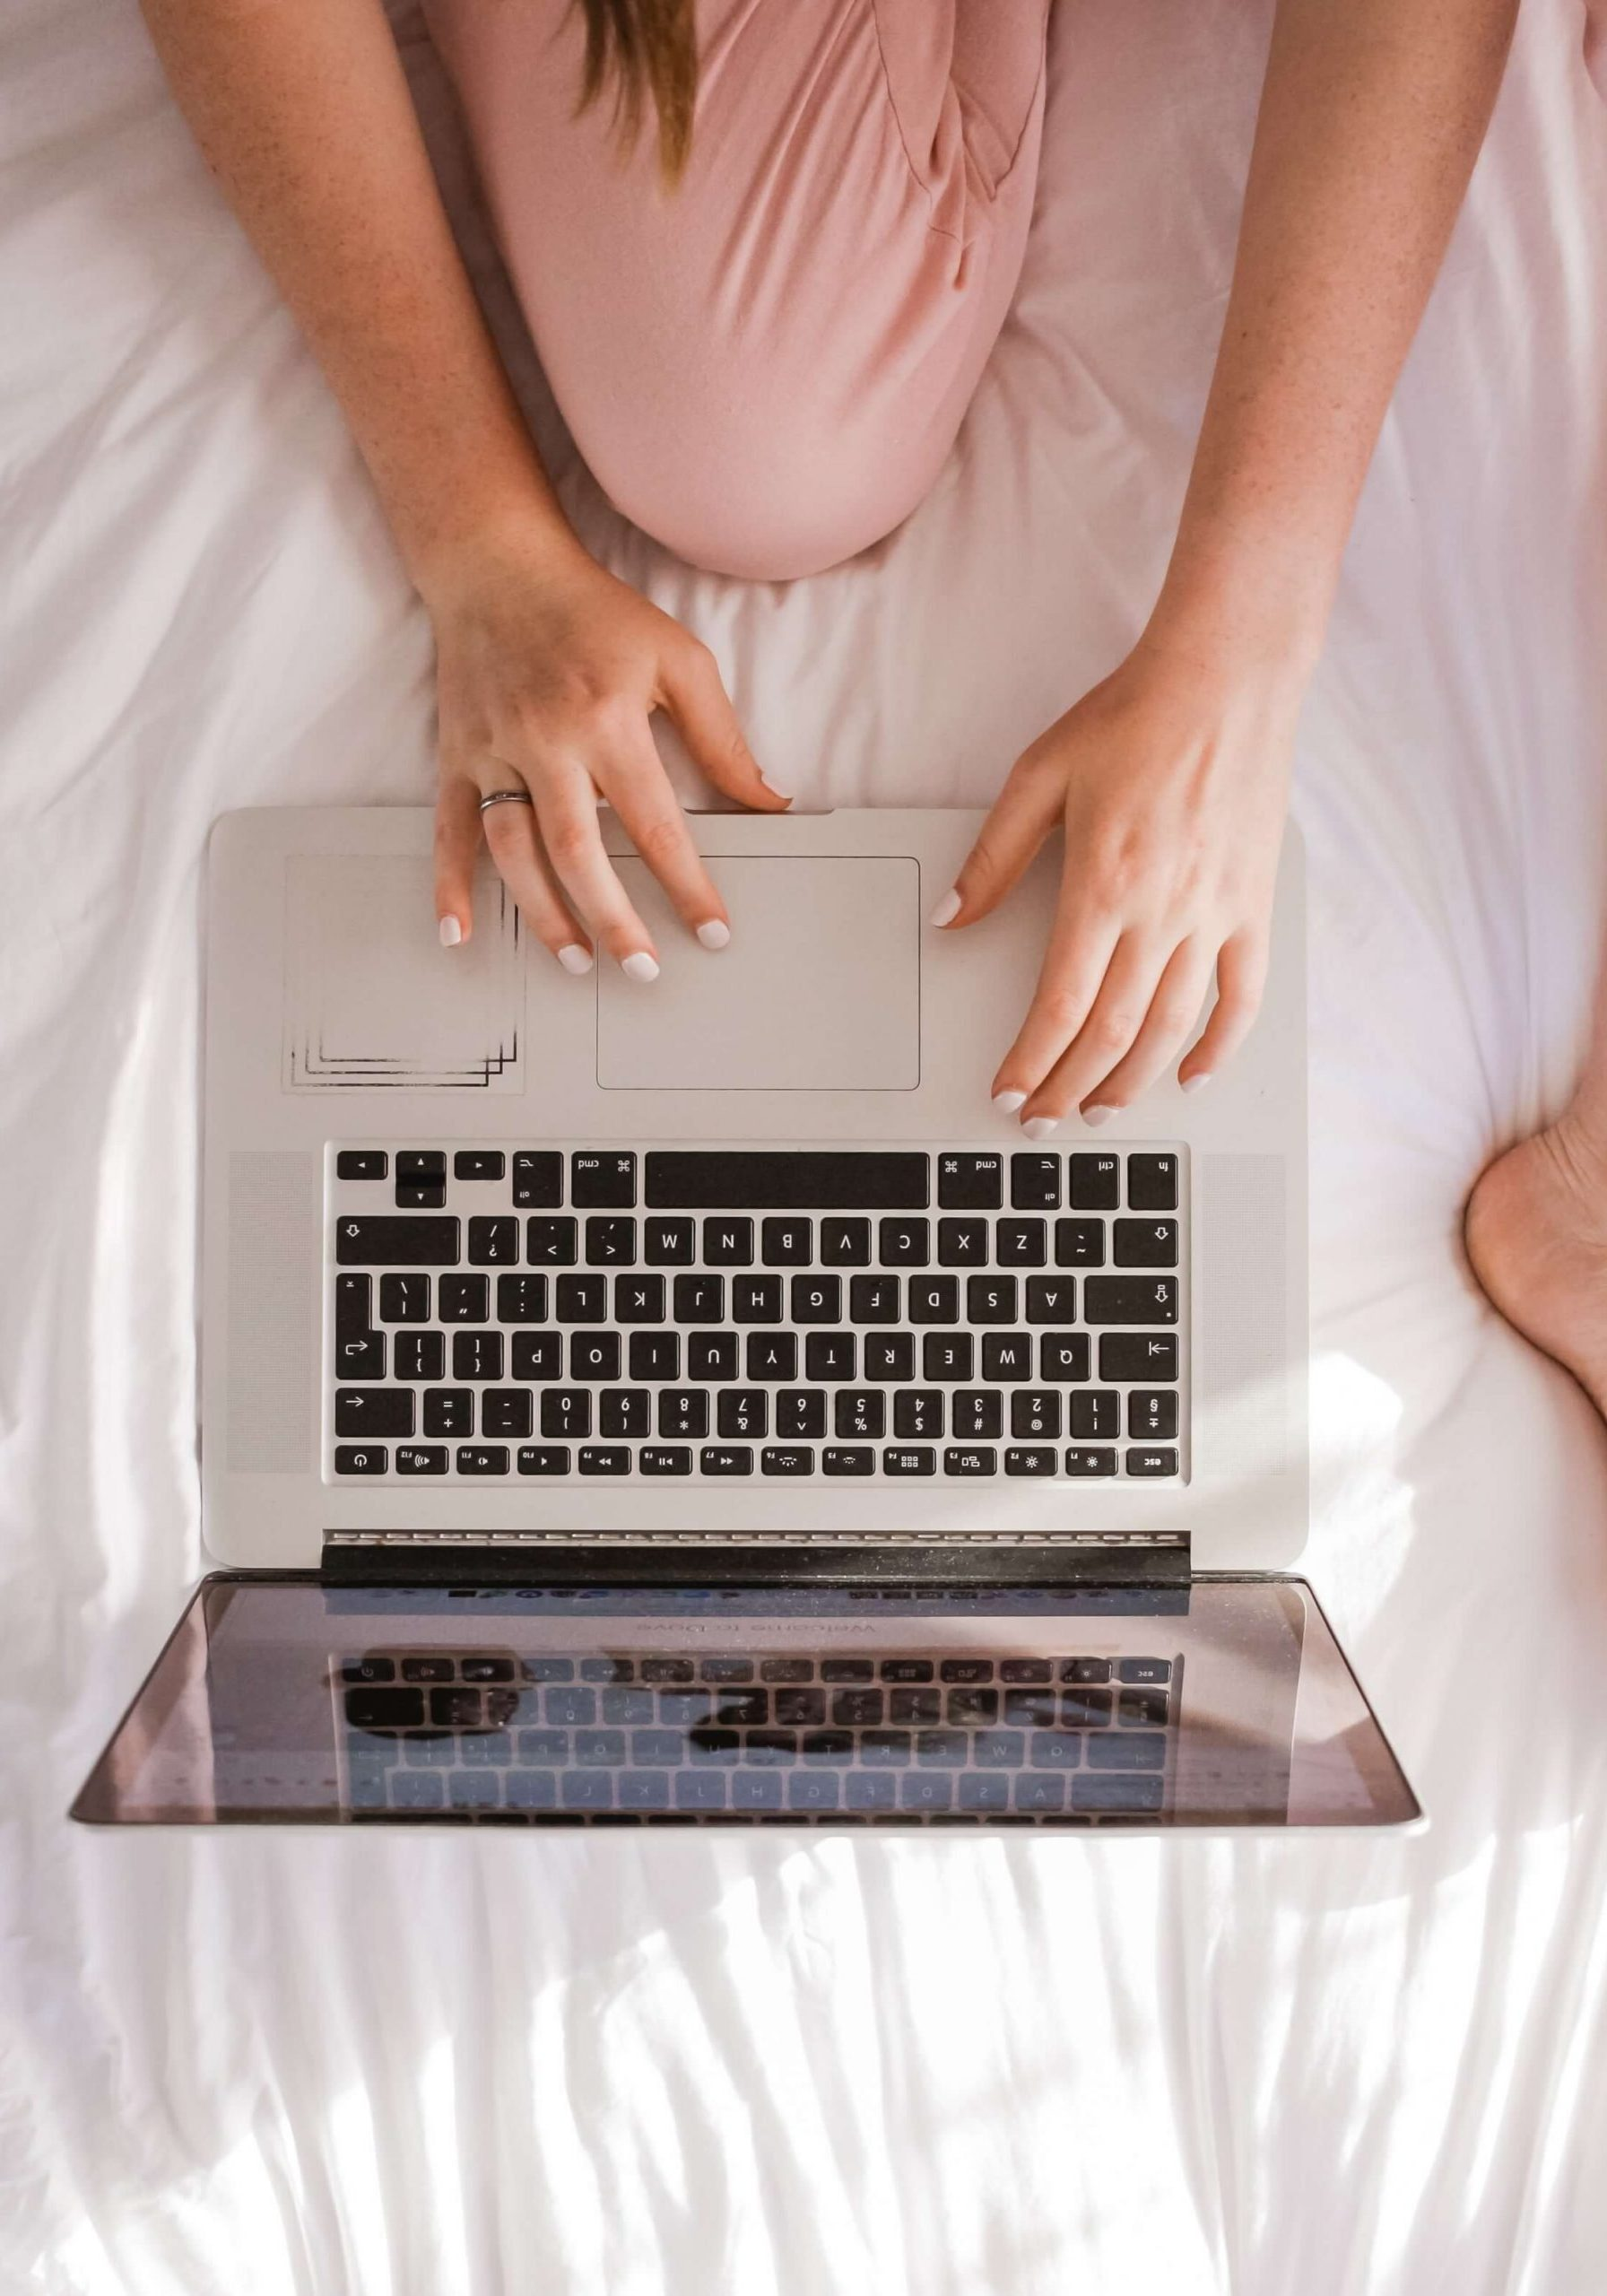 Image of a Woman sitting on a bed using her laptop